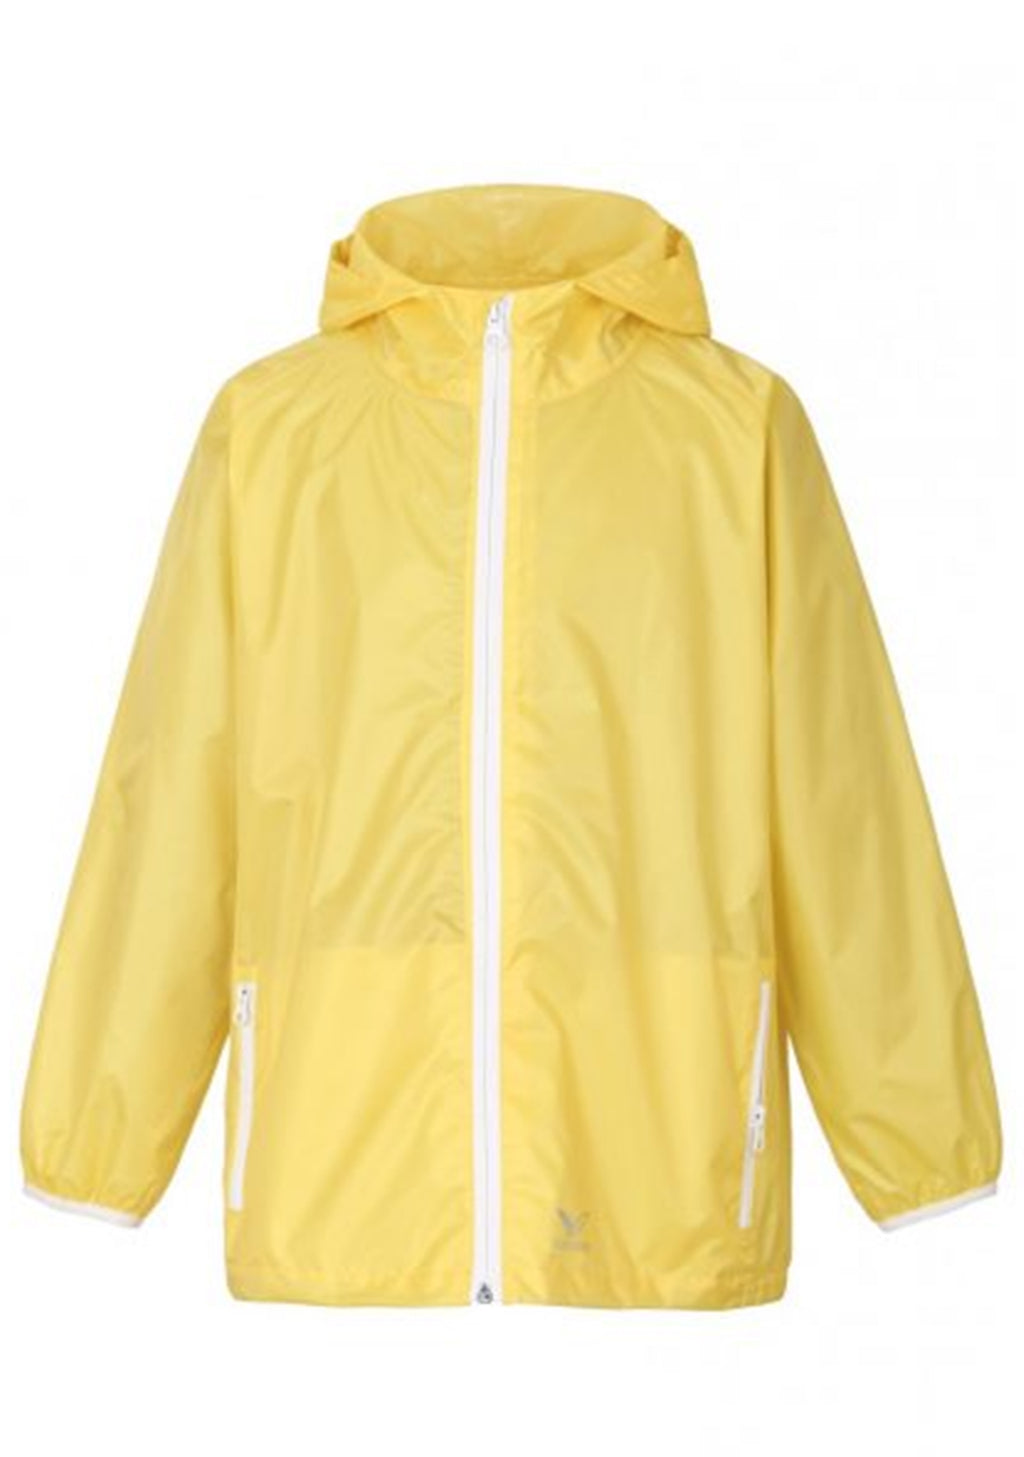 RAINBIRD UNISEX KIDS GOSTOW RAIN JACKET YELLOW <BR> K8556